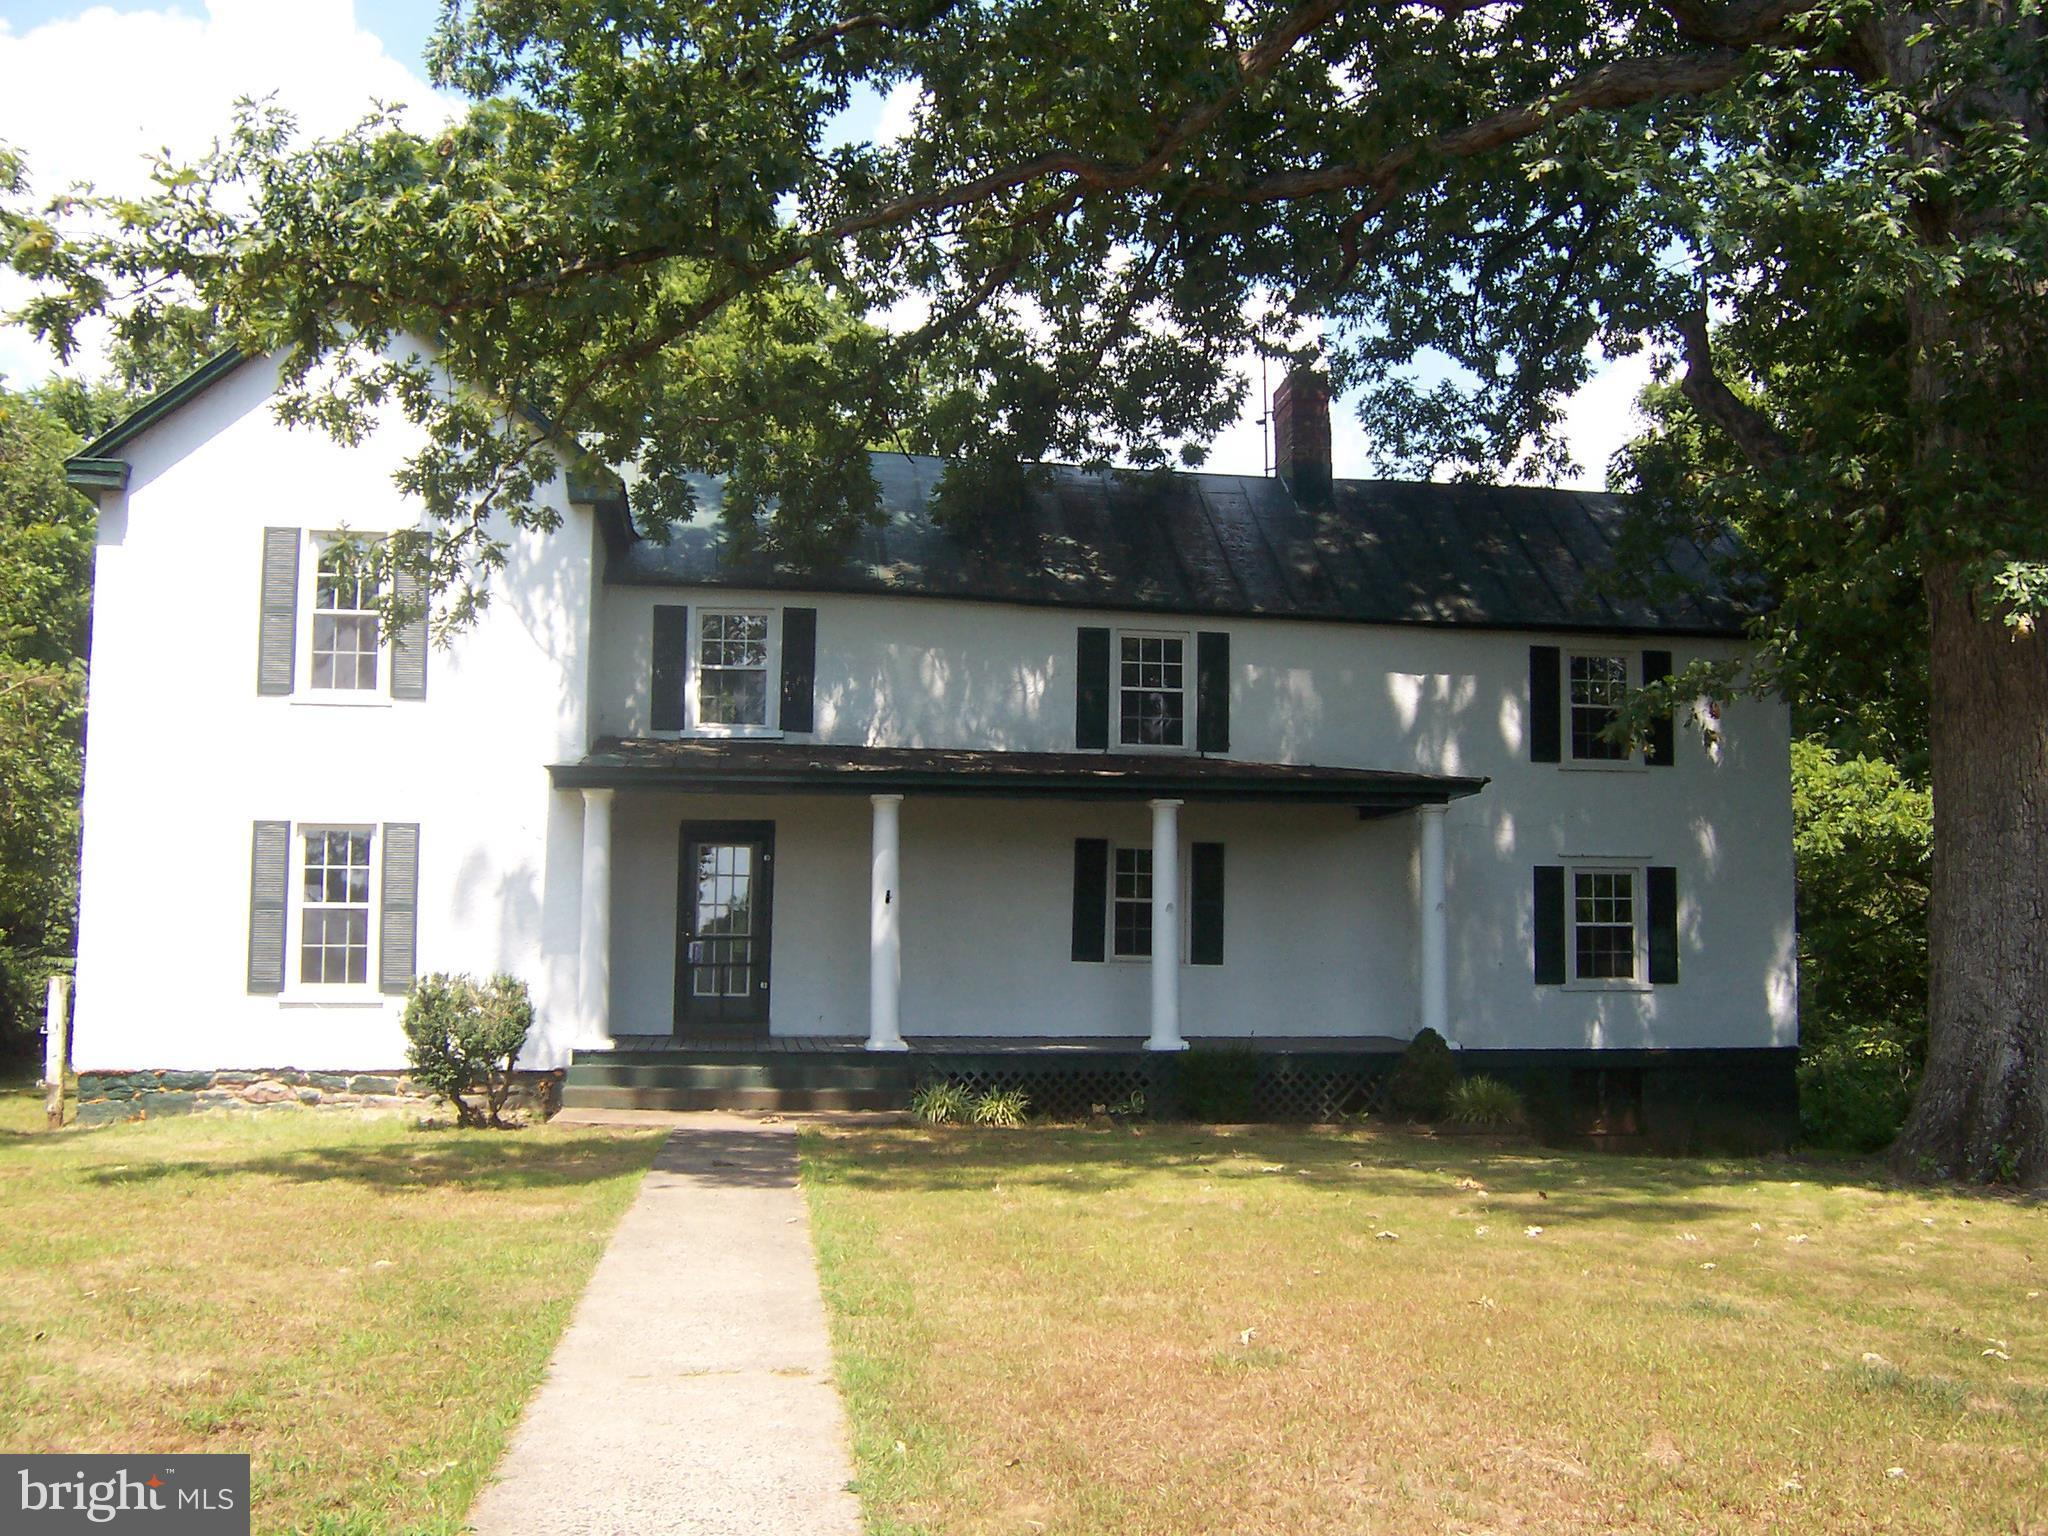 10083 CLARKES ROAD, one of homes for sale in Bealeton